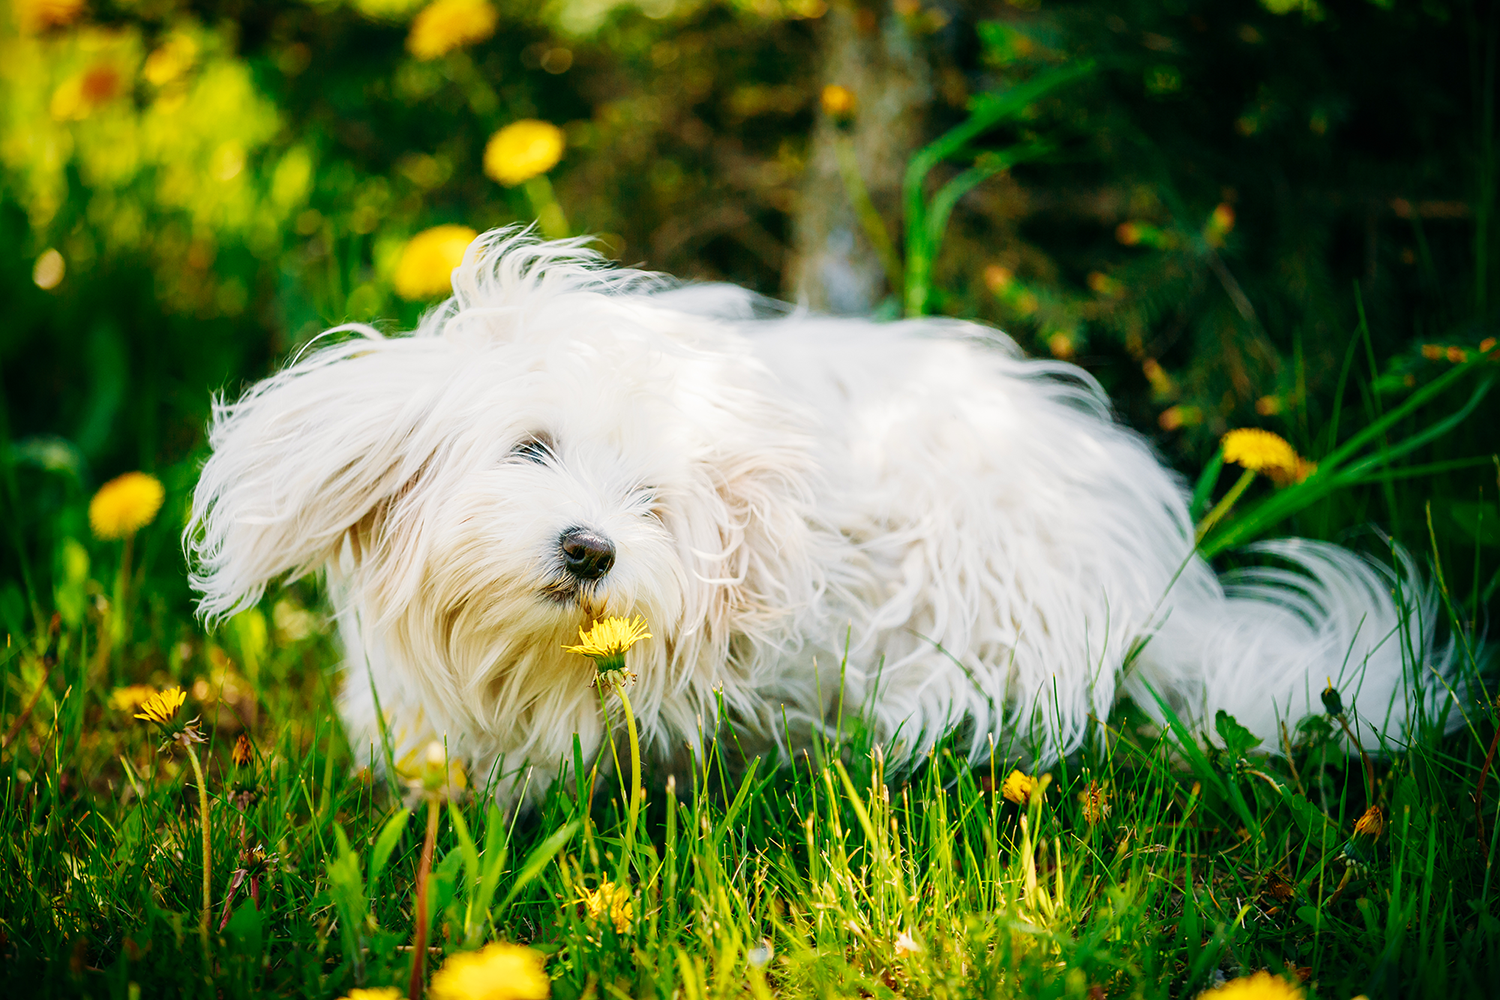 white dog in flower field sniffing flowers